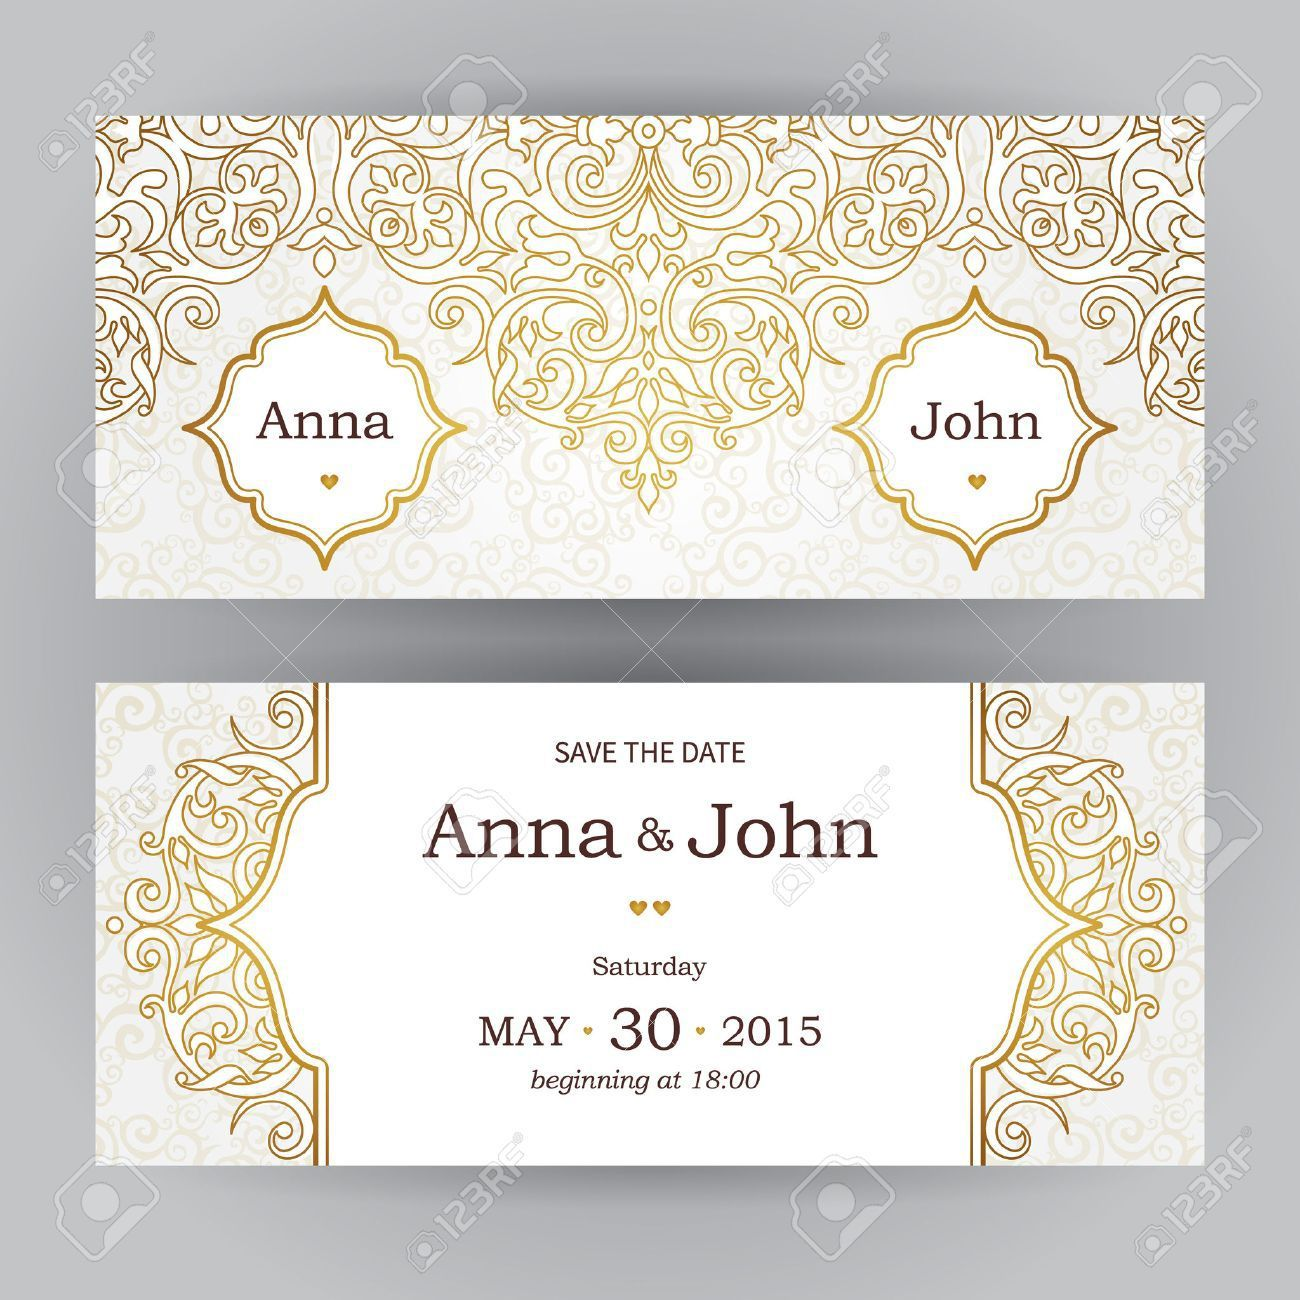 carte anniversaire carte d invitation mariage orientale. Black Bedroom Furniture Sets. Home Design Ideas